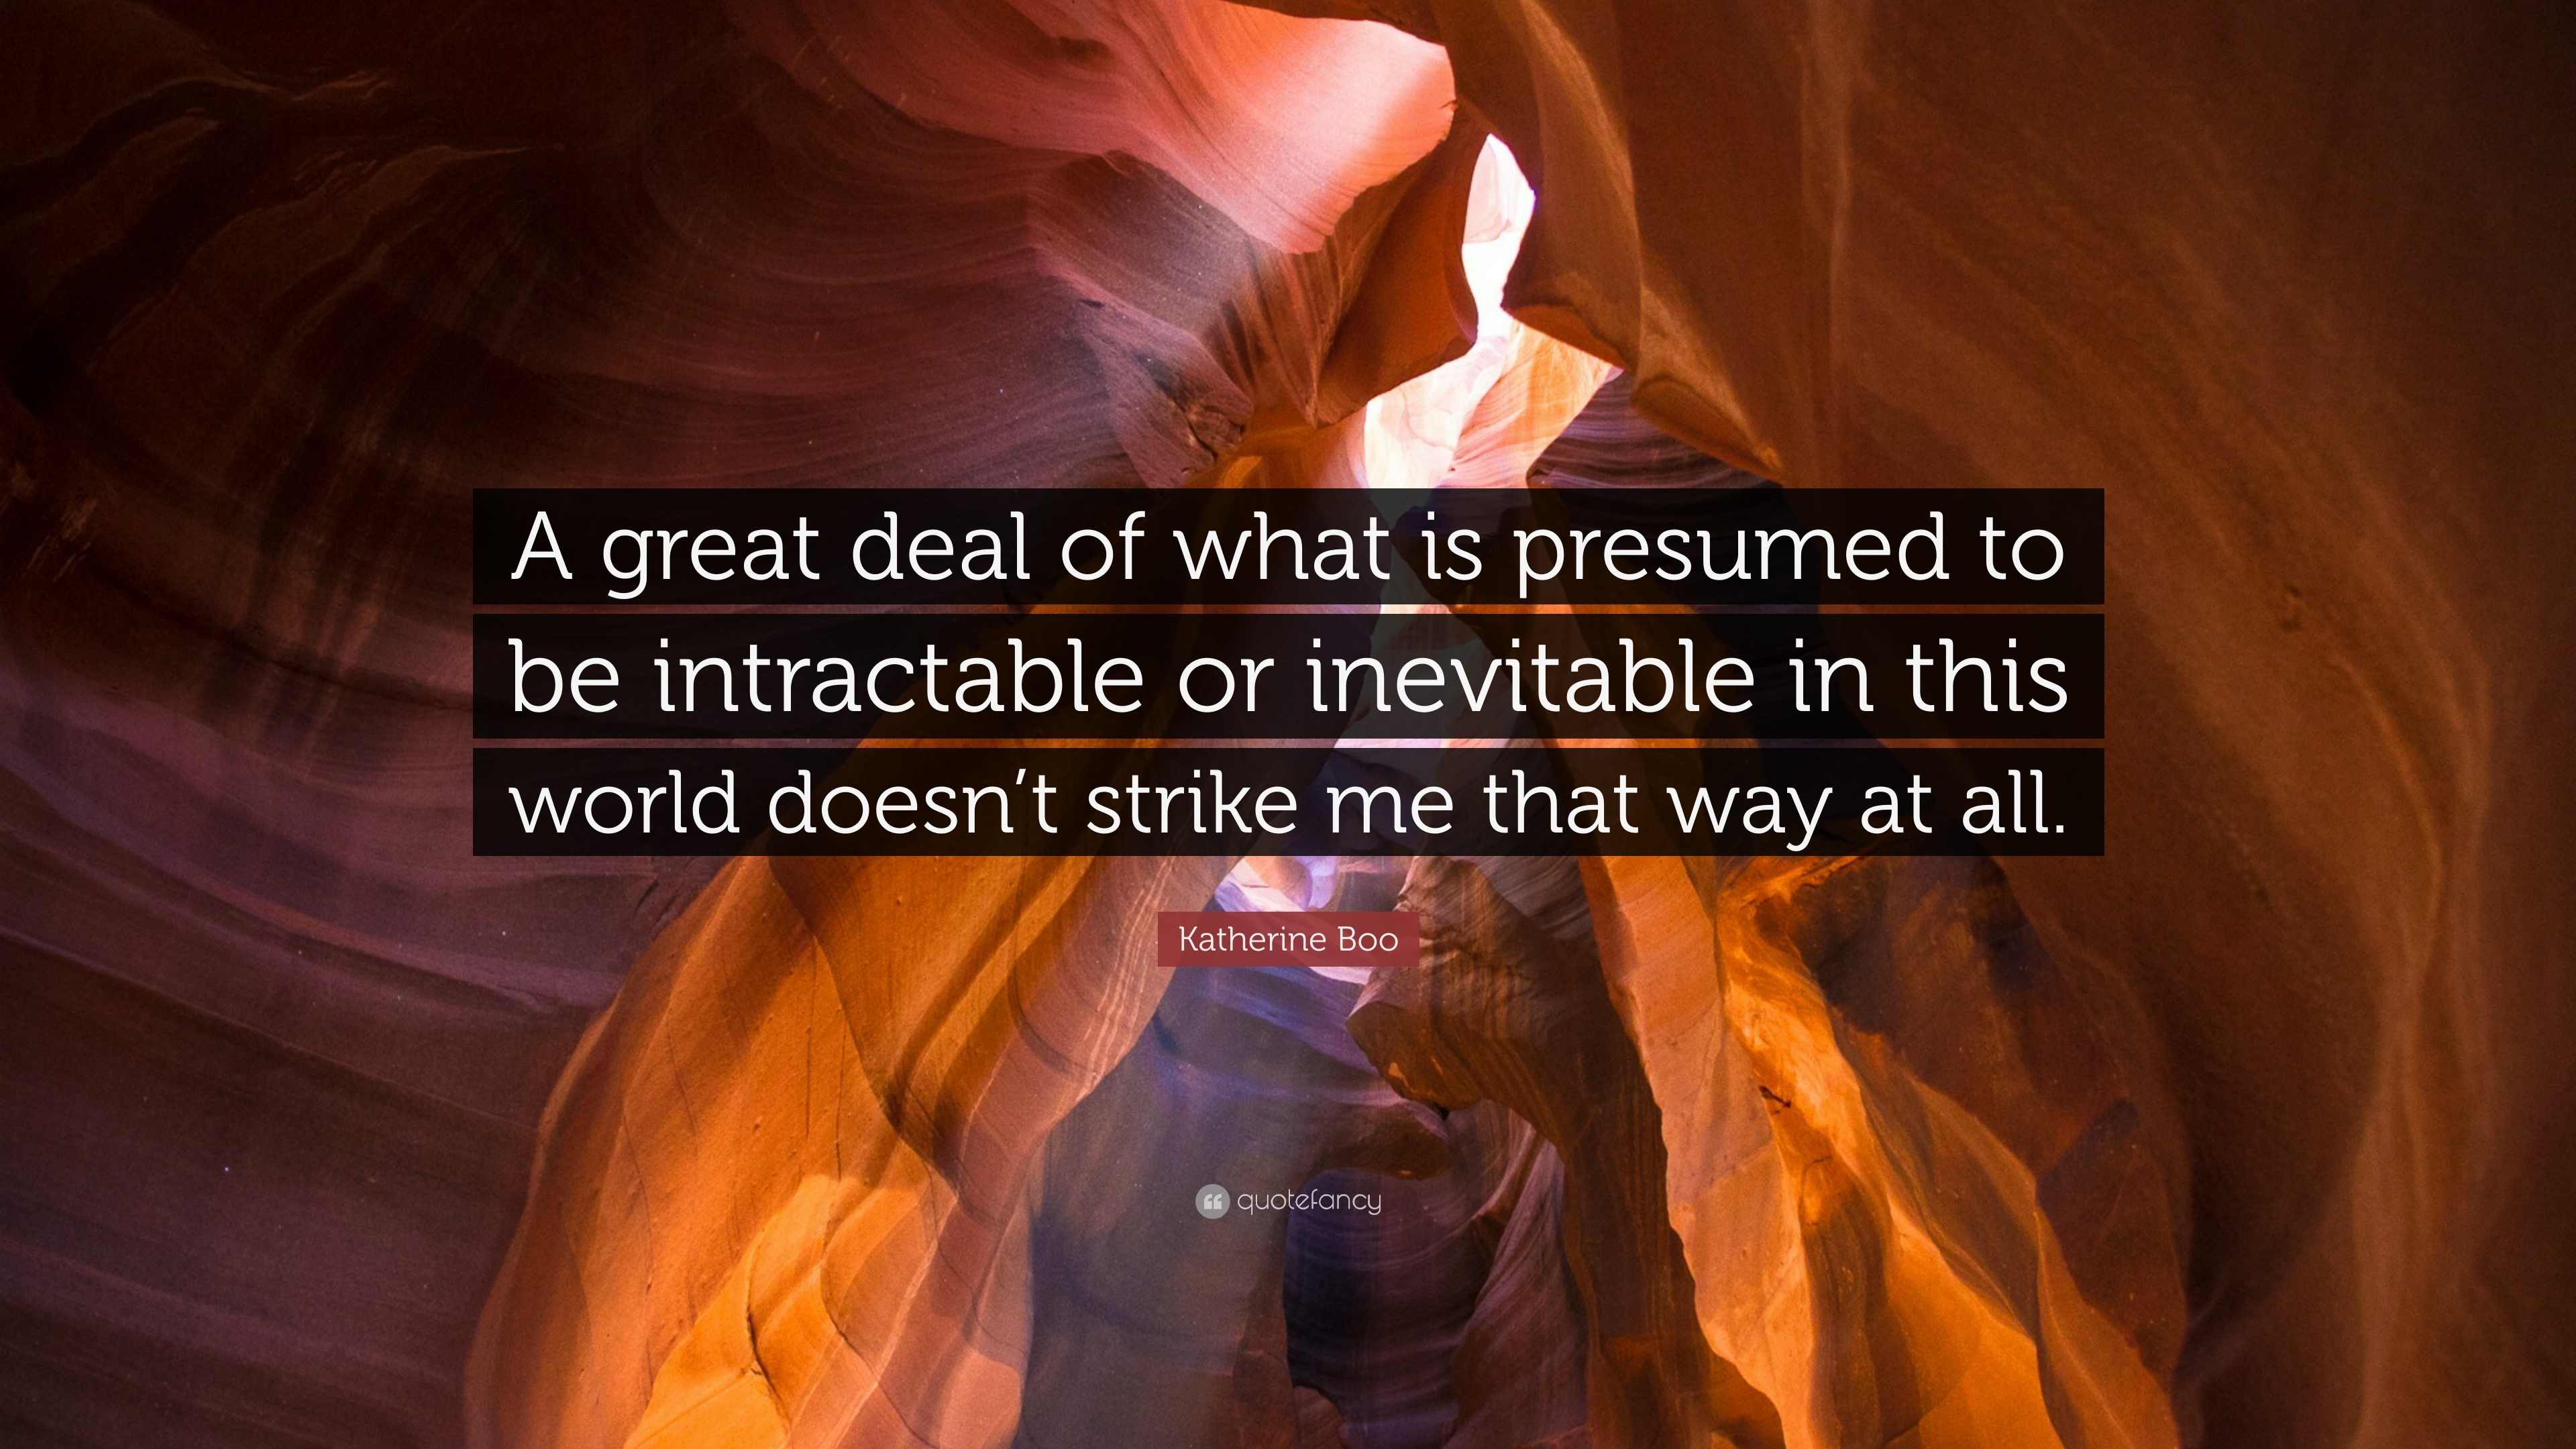 Awesome Katherine Boo Quote: U201cA Great Deal Of What Is Presumed To Be Intractable Or Intended For What Is Presumed